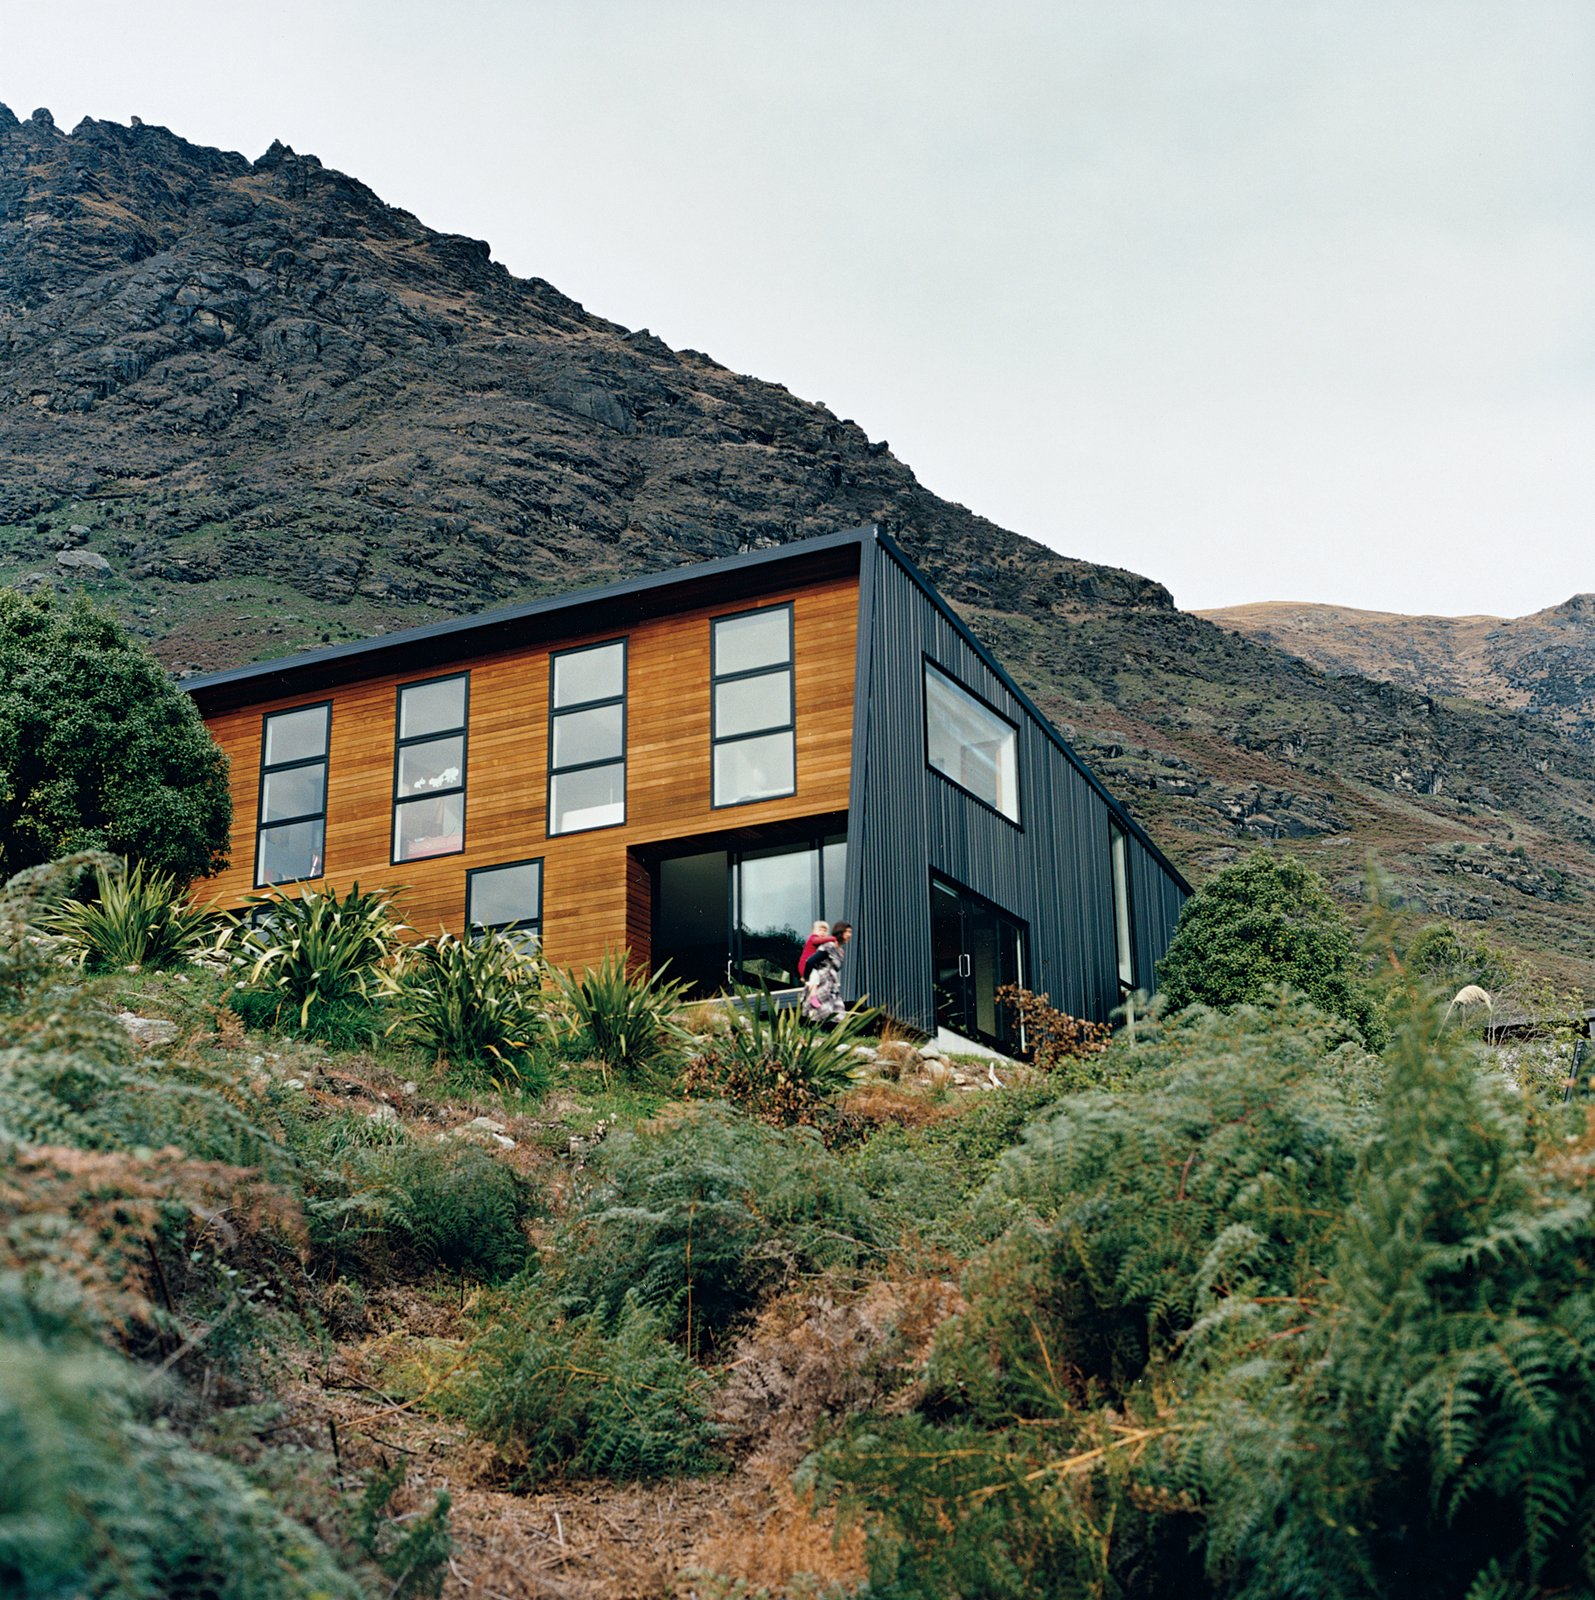 The location on the shores of a small bay means it is sheltered from cold southerly winds. The alpine location provided plenty of inspiration for landscaping, which Ritchie and Kerr elected to keep as minimal as possible, as if the home had landed on its site with as little disturbance or alteration as possible. Drift Bay House by Dwell